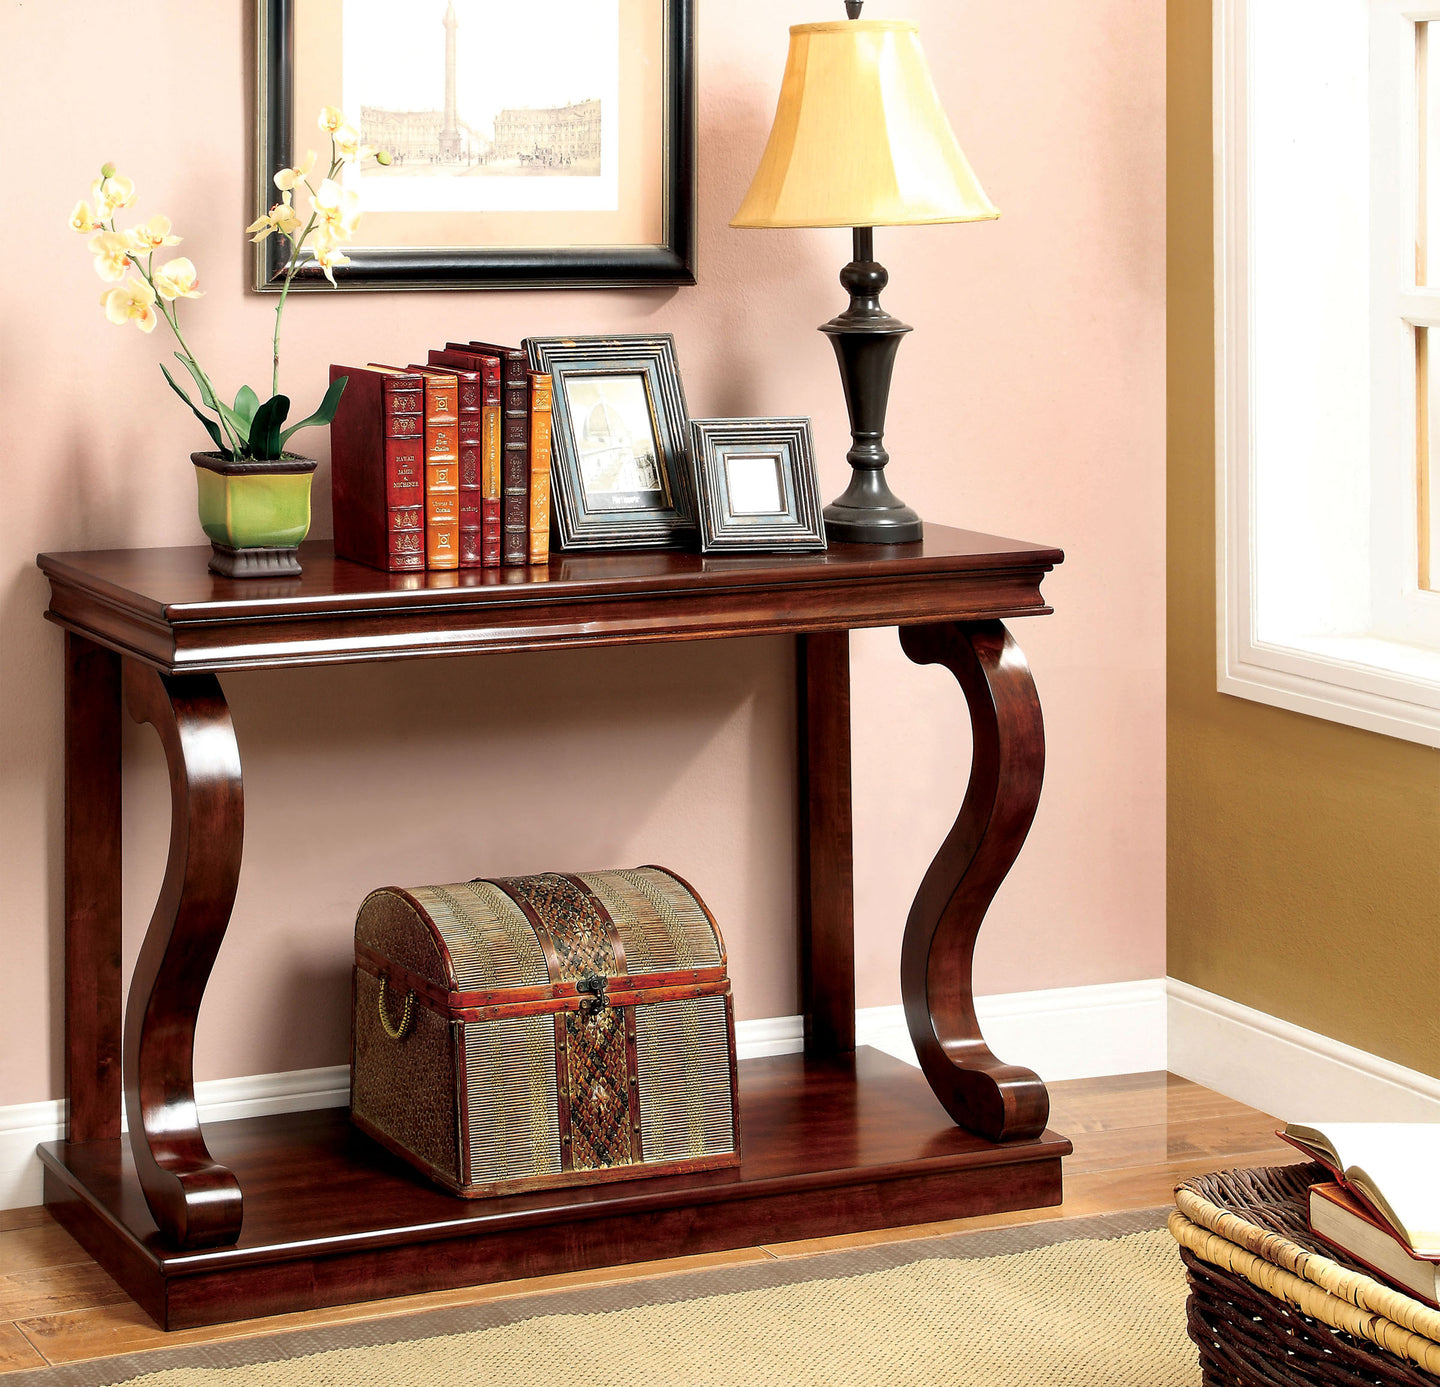 Furniture of America Geelong Cherry Wood Finish Console Table